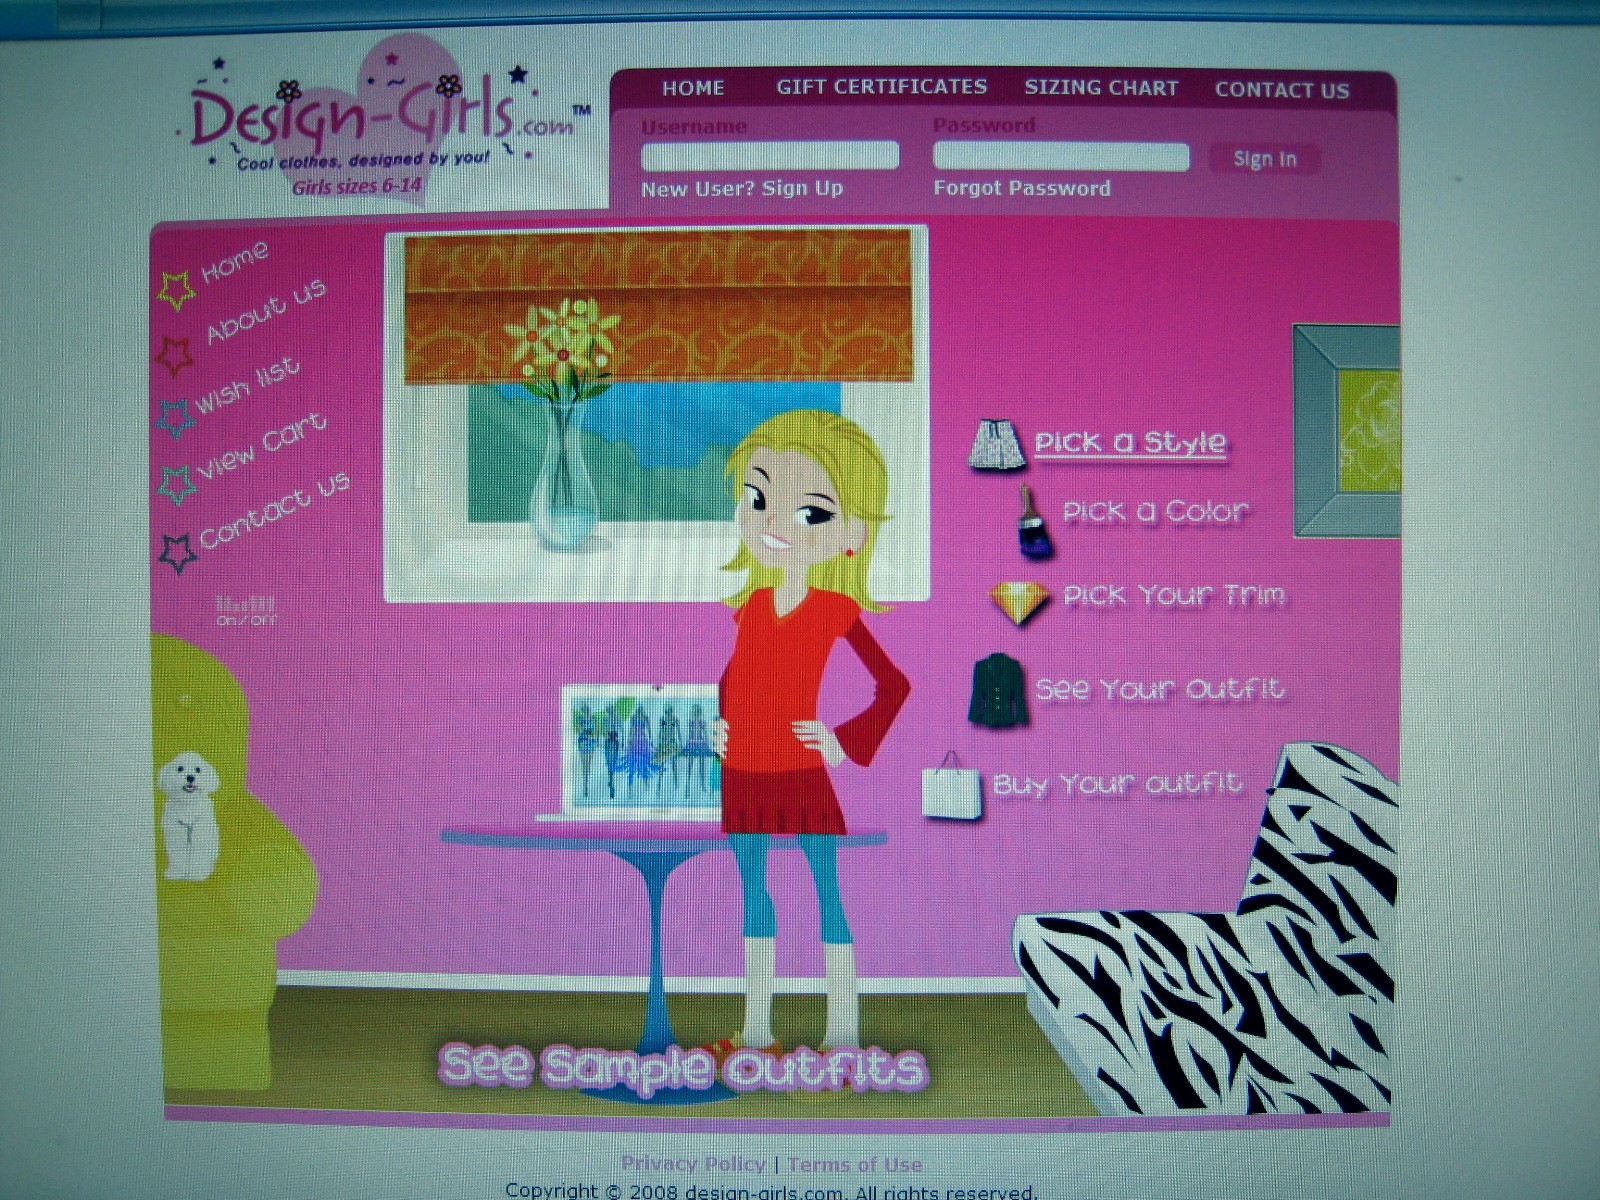 Design Your Own Clothes For Girls Online Design Girls com